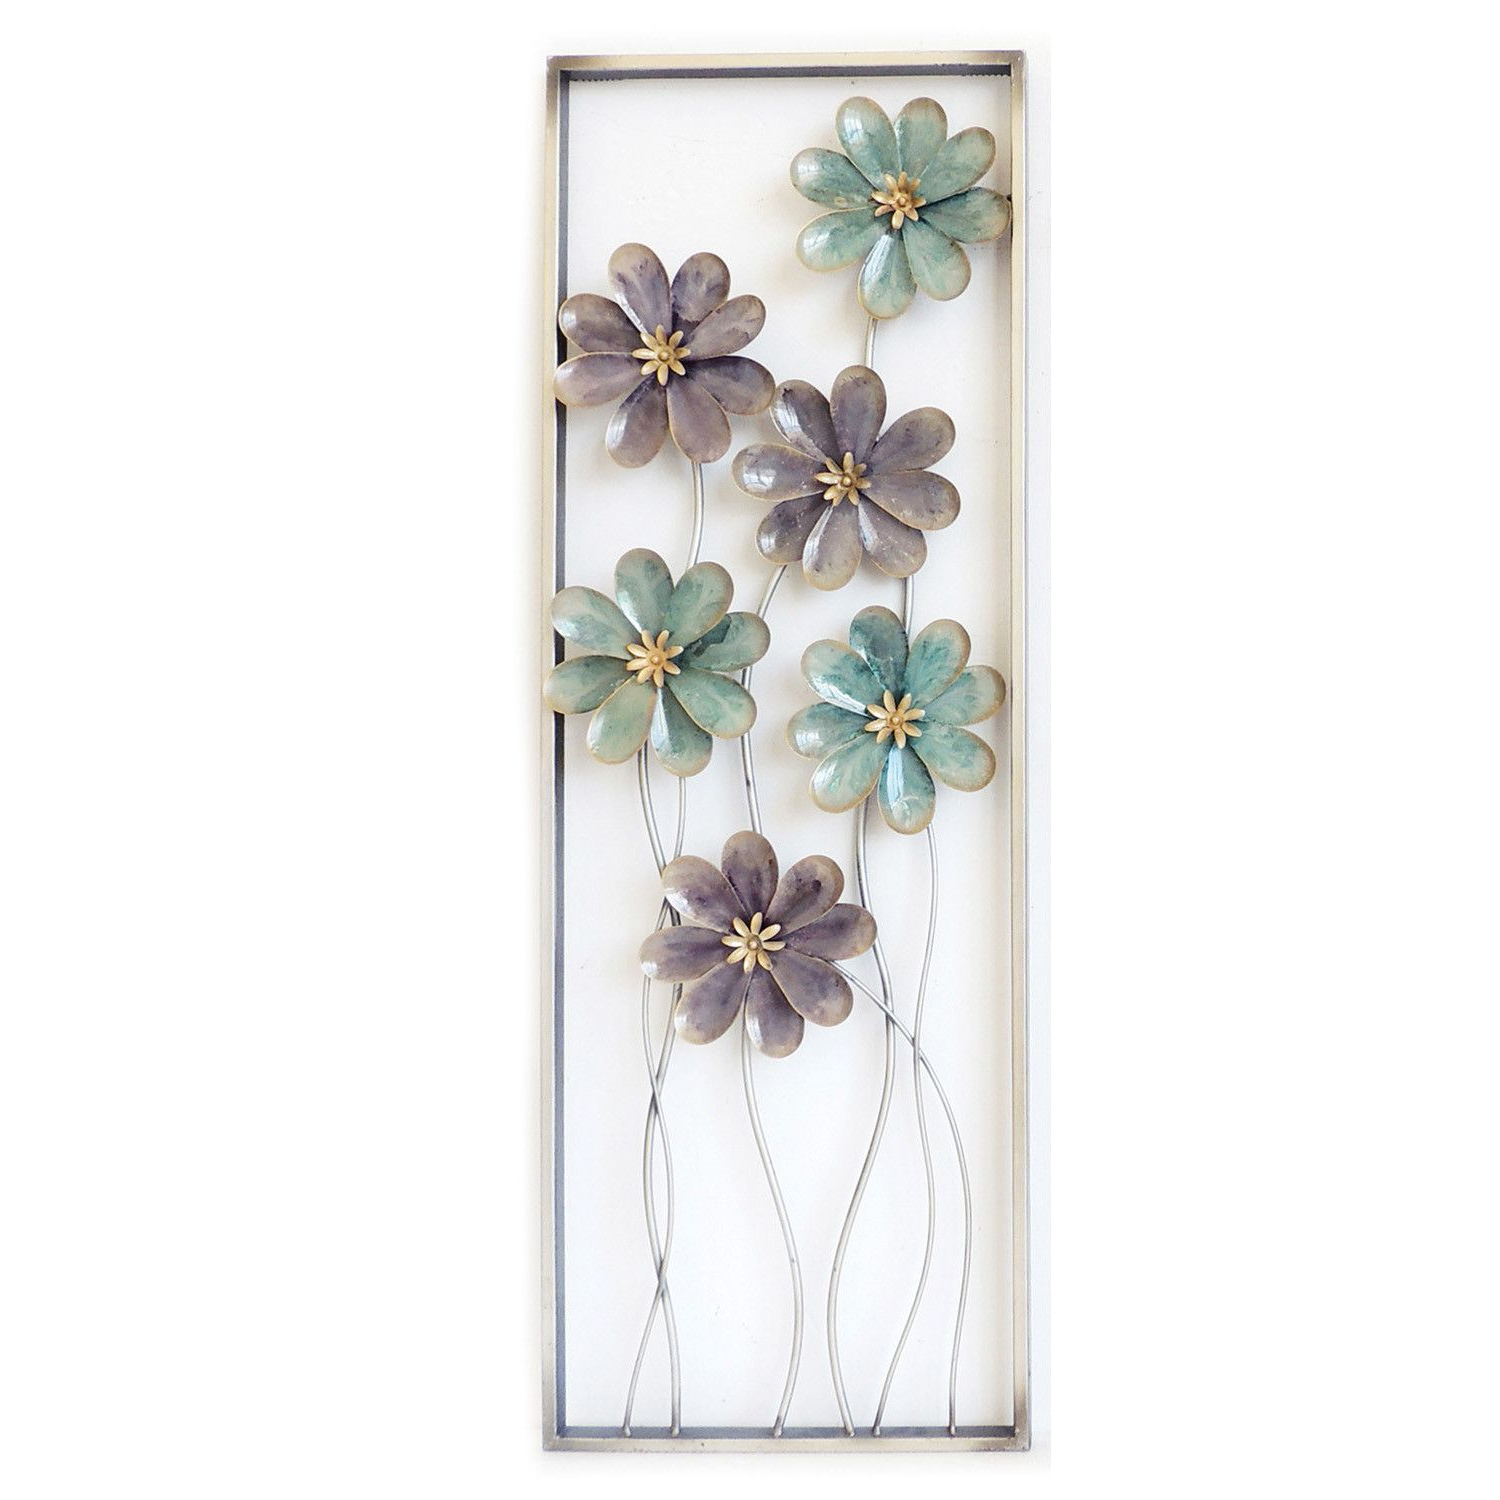 Sign Wall Decor By Charlton Home Intended For Most Recently Released 6 Flowers On Stem Wall Decor (View 13 of 20)